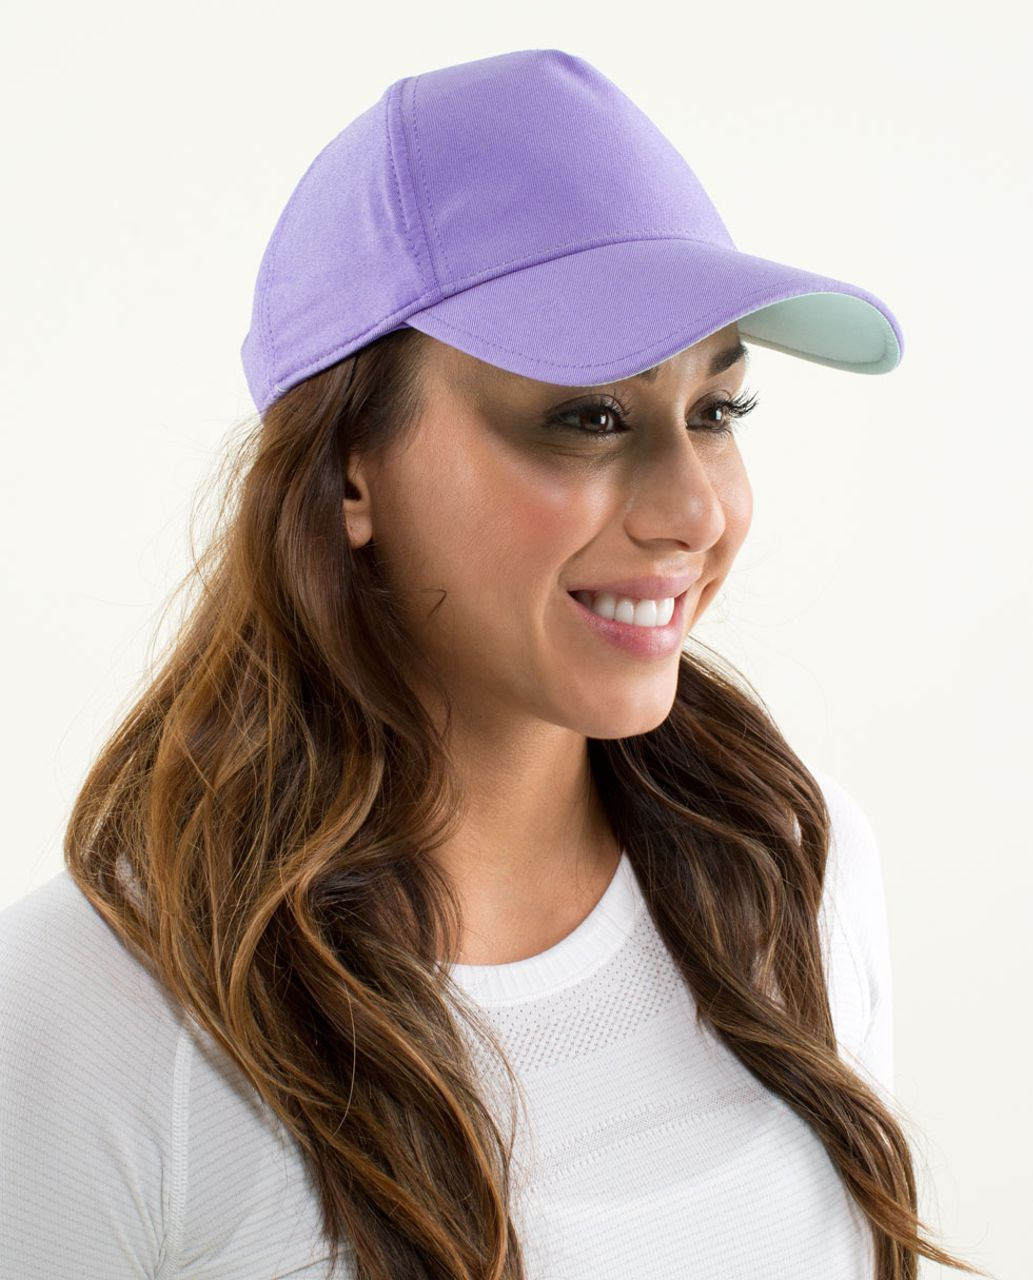 Lululemon Classy Cap - Power Purple / Aquamarine